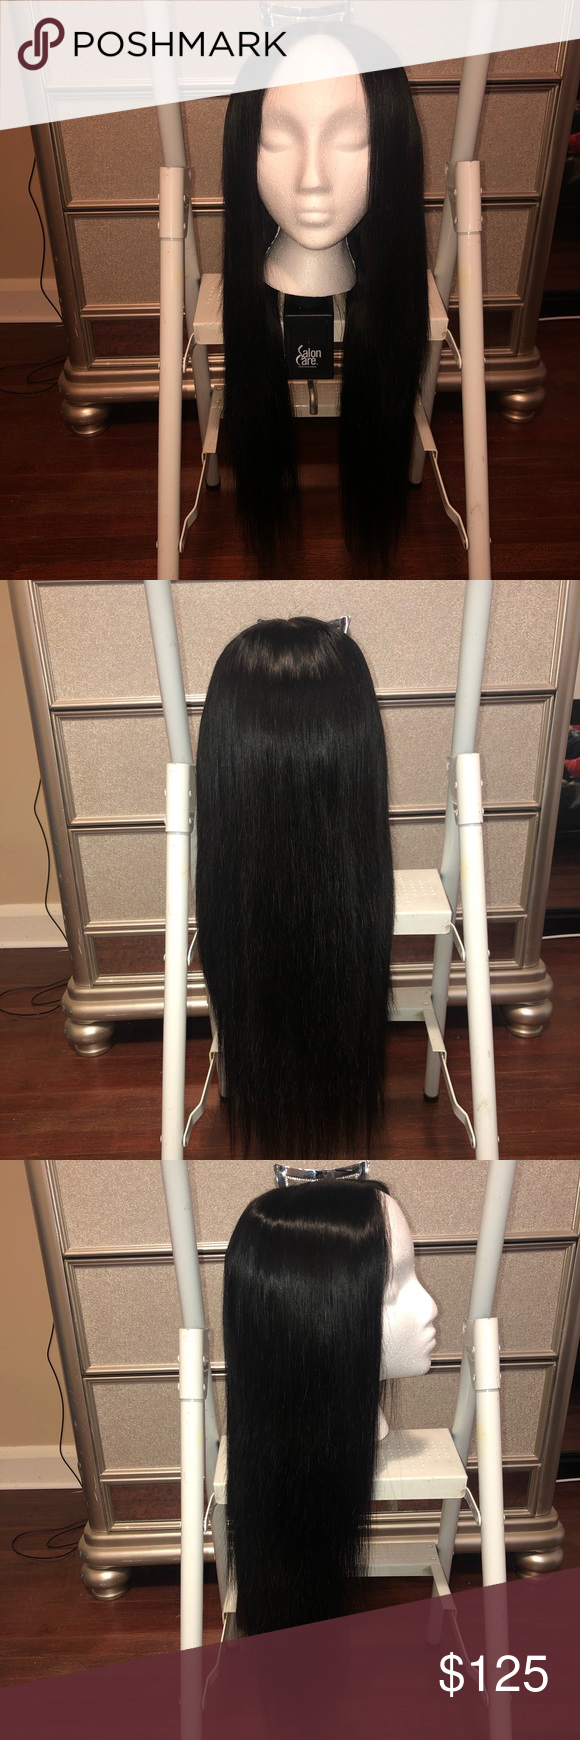 Straight Closure Wig Hand made wig using 3 bundles 16 inch, 18 inch, 20 inch Brazilian body wave from Hairsofab and a 14 inch closure from a different company. The color is dark brown. Hair can be straightened and curled. It is very soft and tangle free. Accessories Hair Accessories #brazilianstraightening